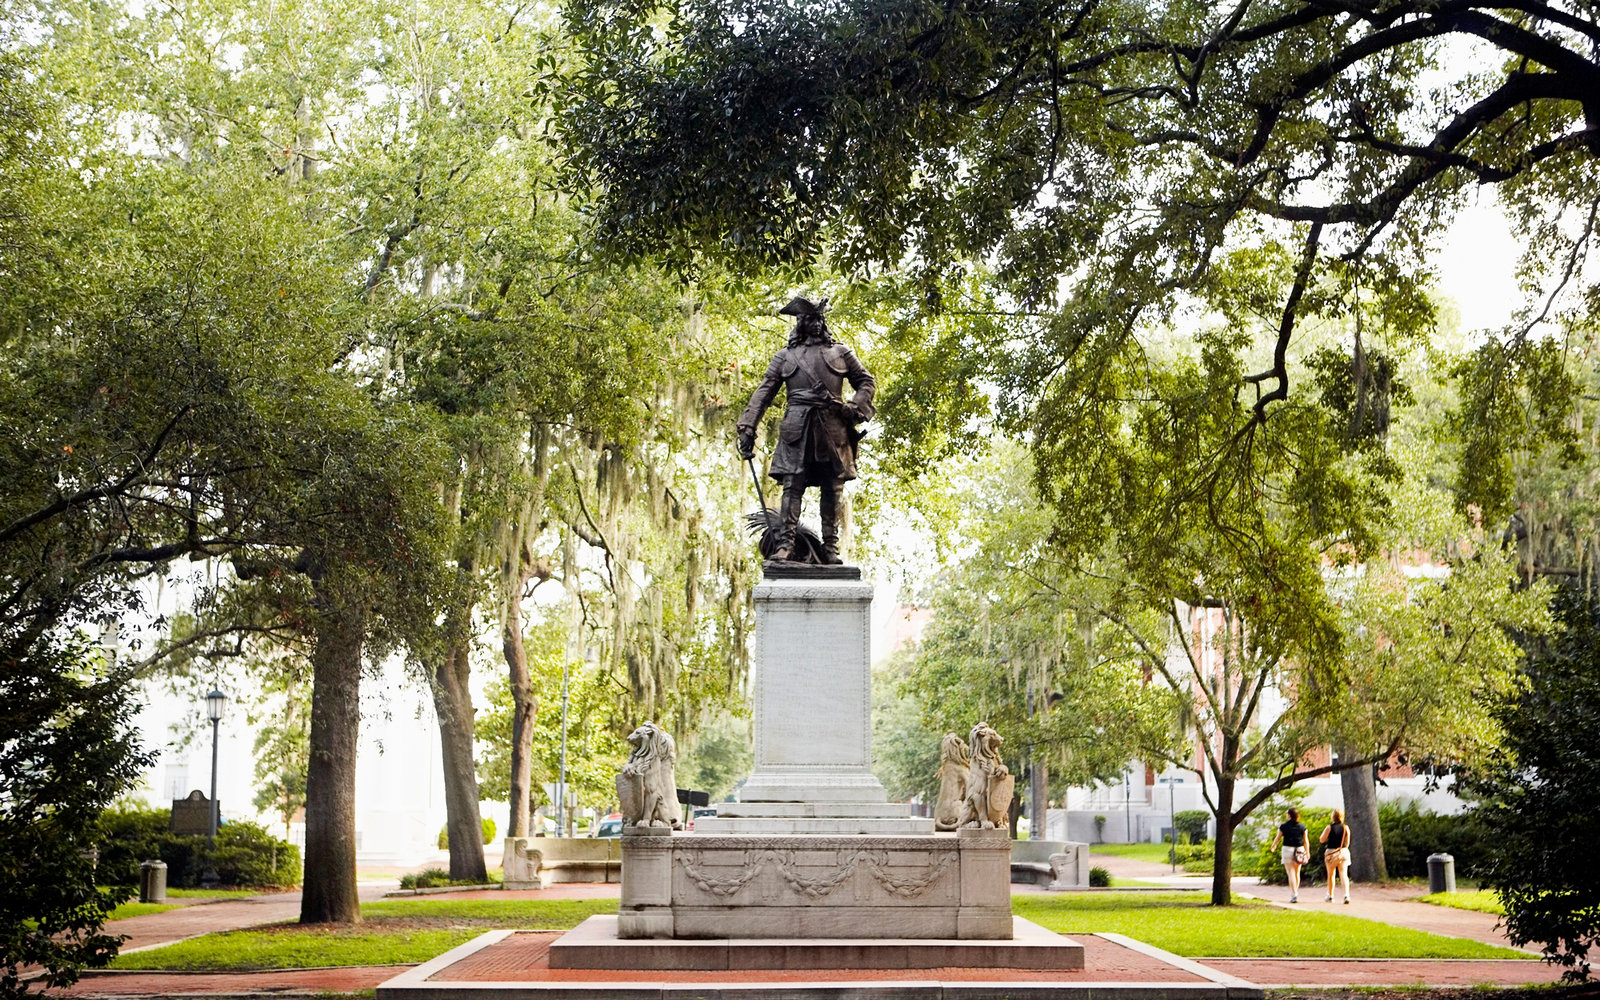 No. 3: Savannah, Georgia